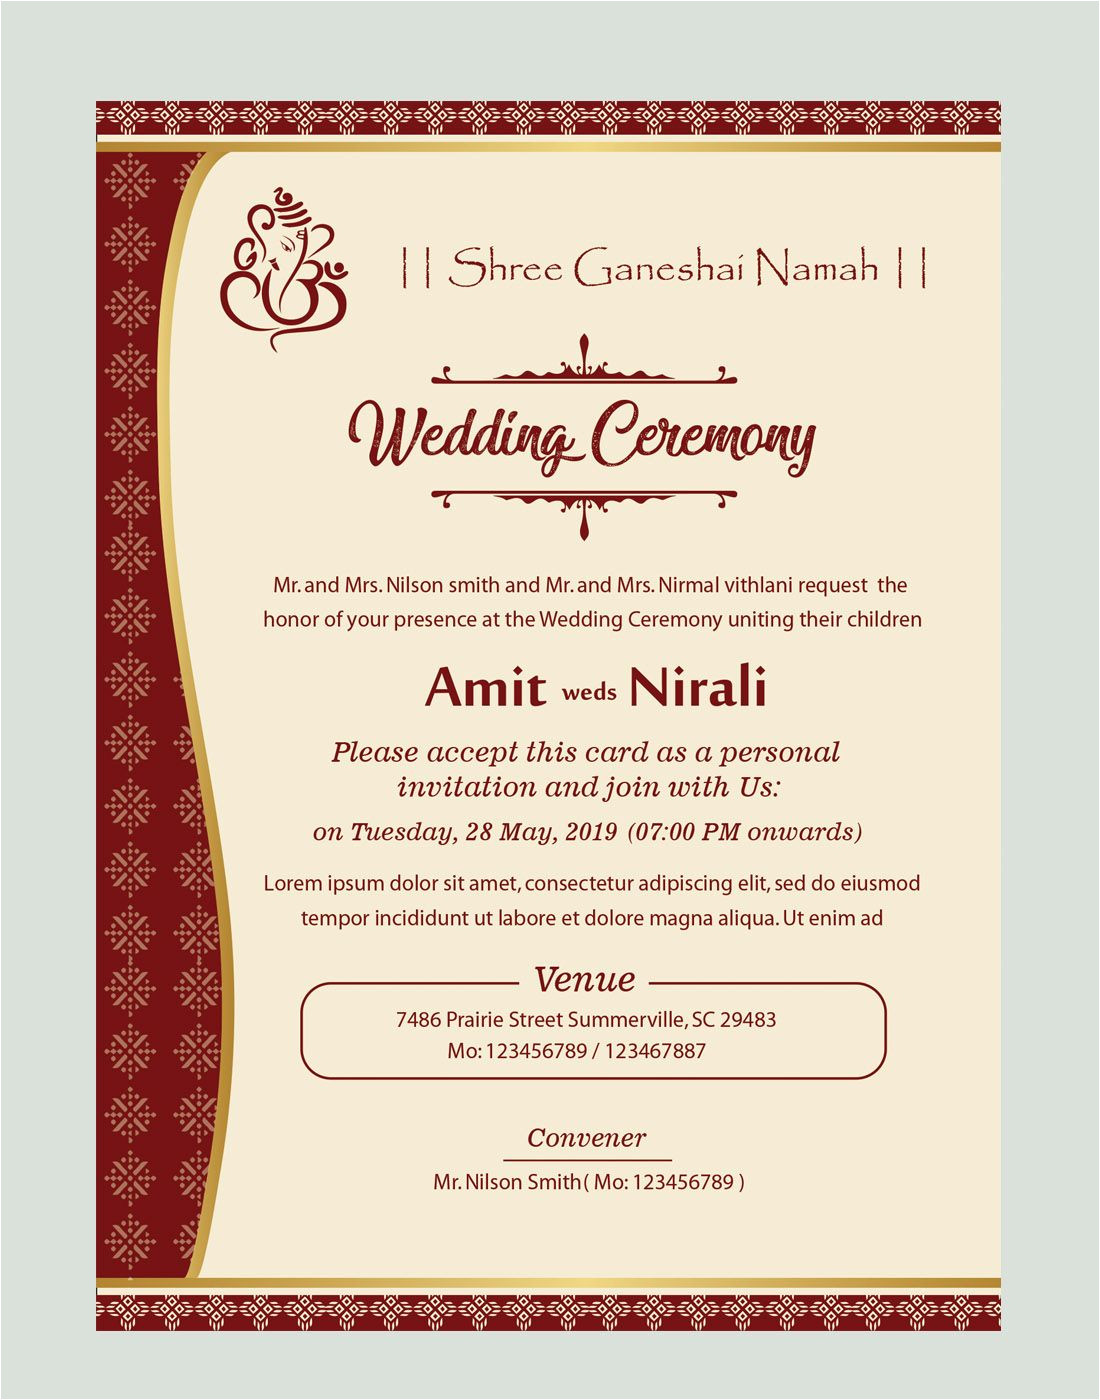 Engagement Invitation Card In Marathi Free Kankotri Card Template with Images Printable